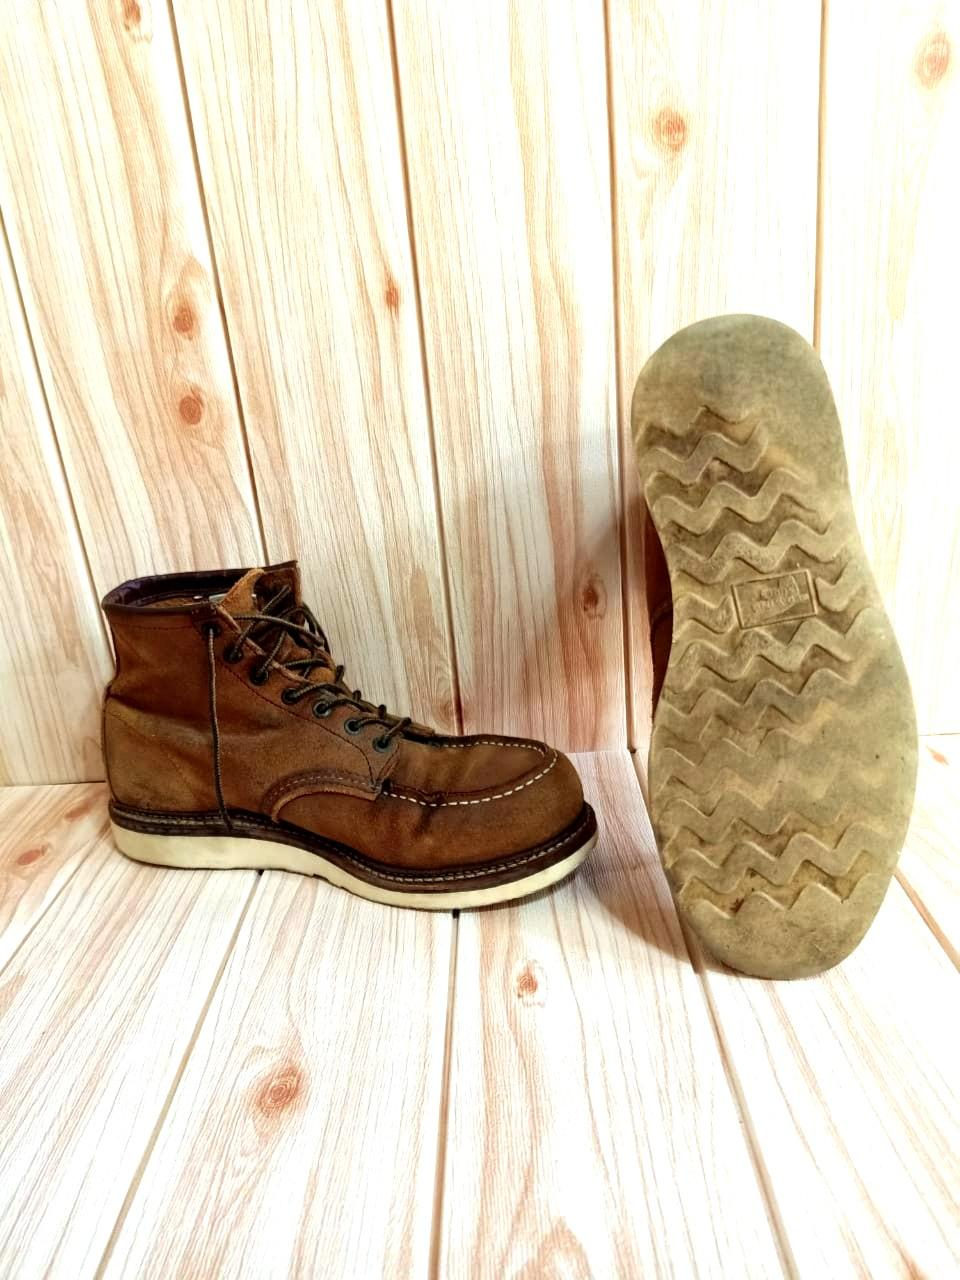 Sepatu Red Wing Boots Original Made in USA size 43 Genuine Leather kondisi Mantap